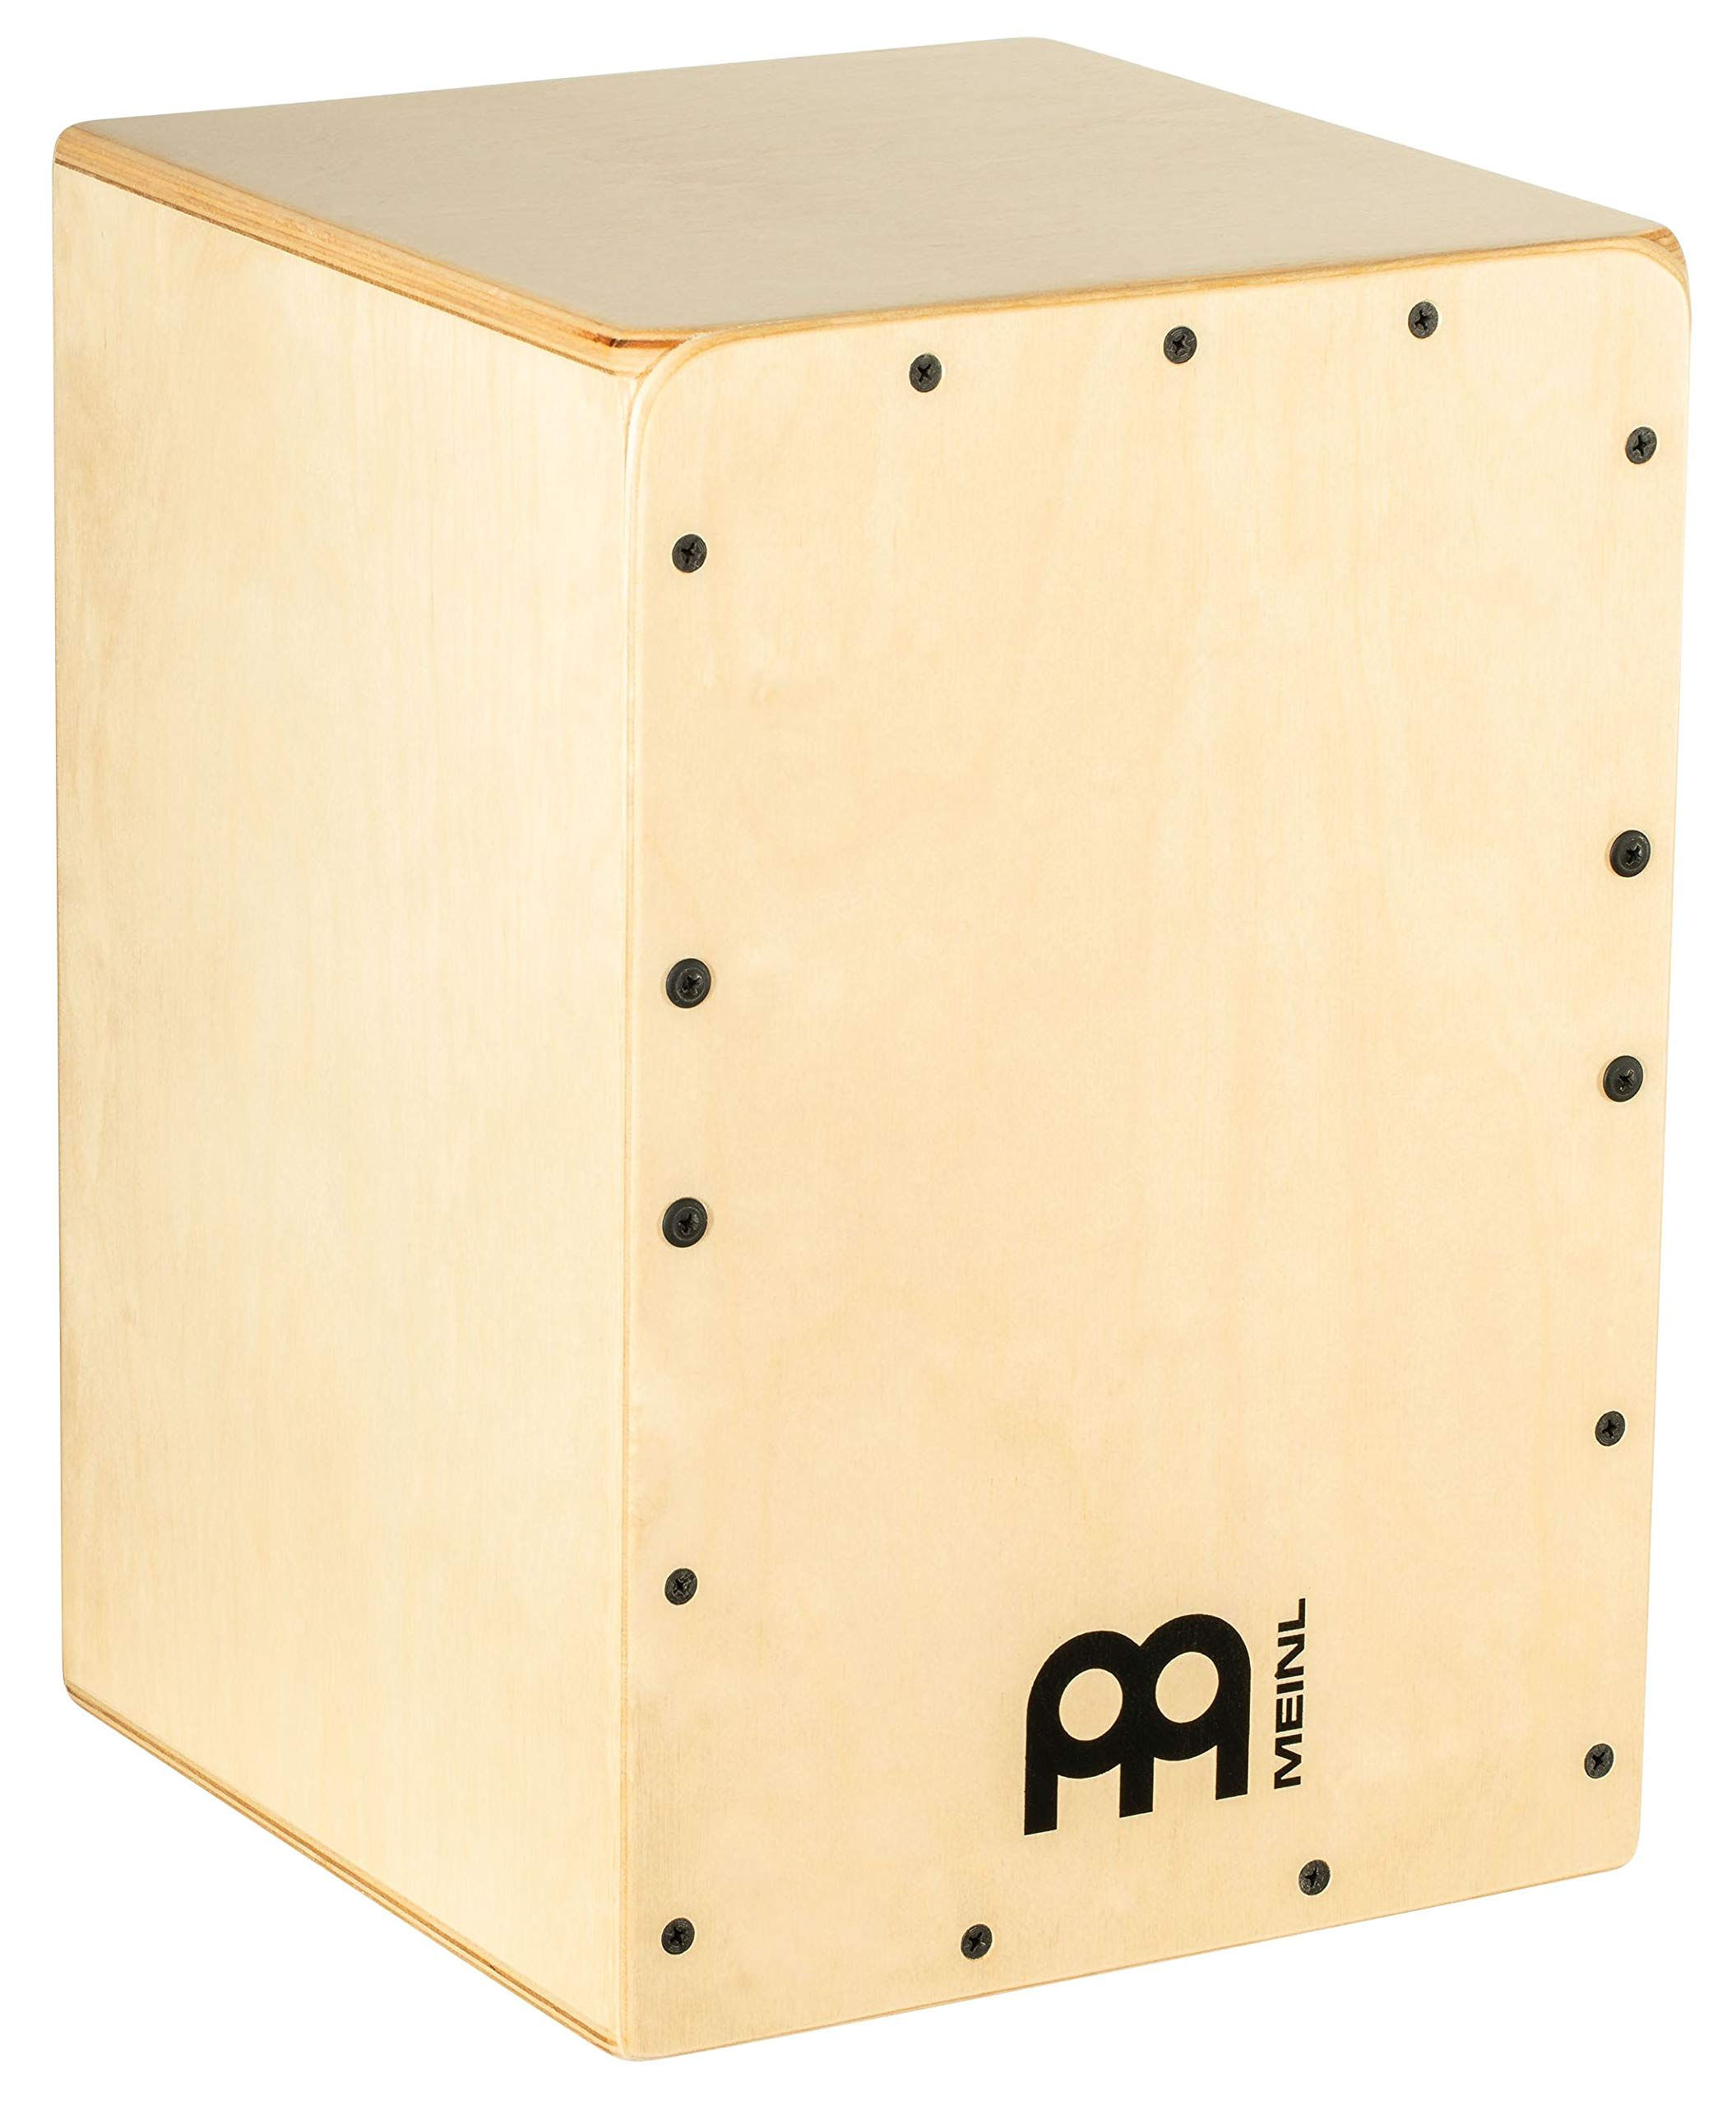 Meinl Cajon Box Drum with Internal Snares - MADE IN EUROPE - Baltic Birch Wood, Compact Size, 2-YEAR WARRANTY (JC50B) by Meinl Percussion (Image #1)